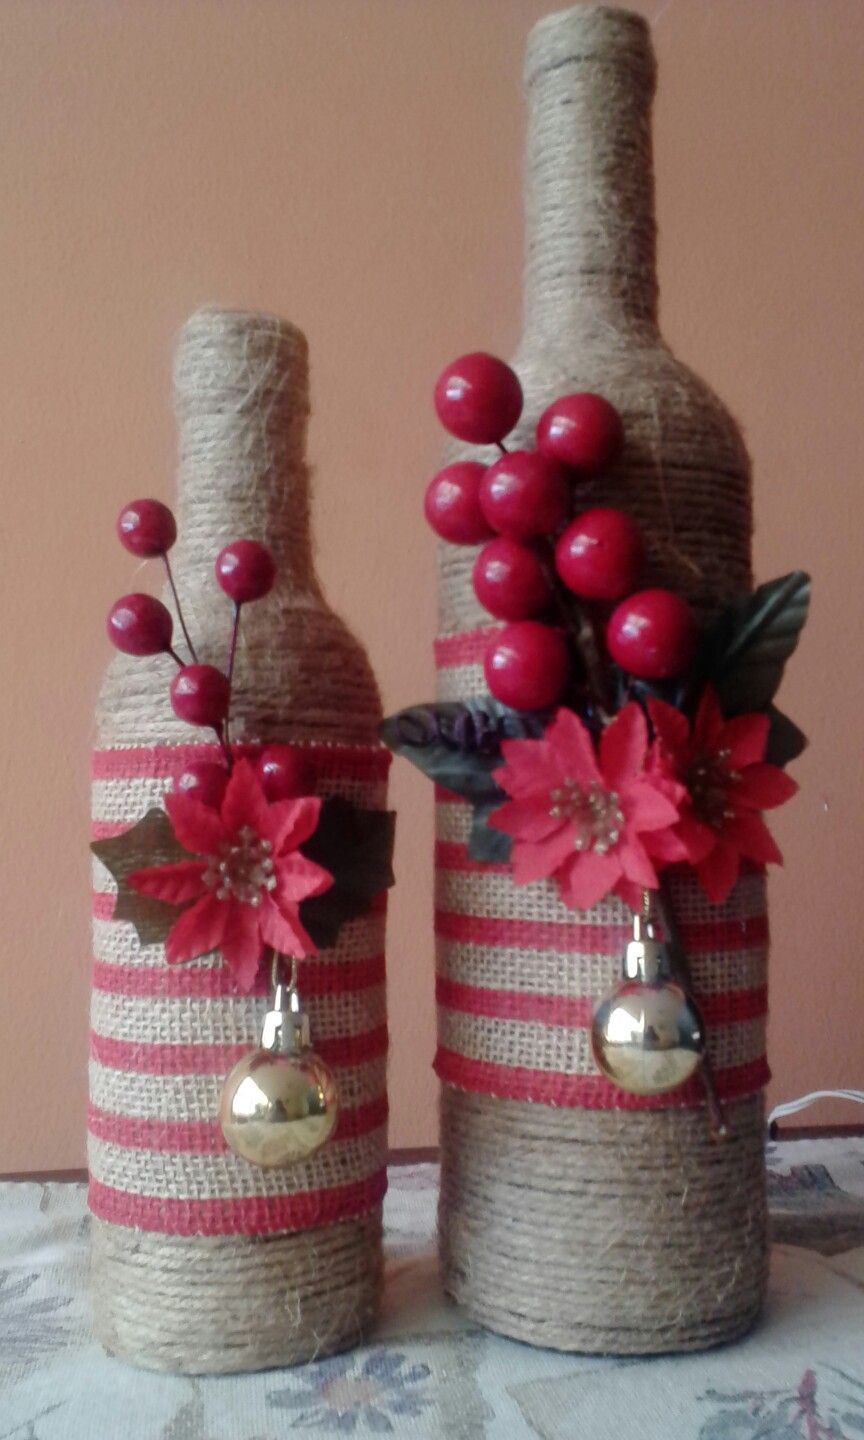 Botellas decoradas pinteres for Adornos decorativos